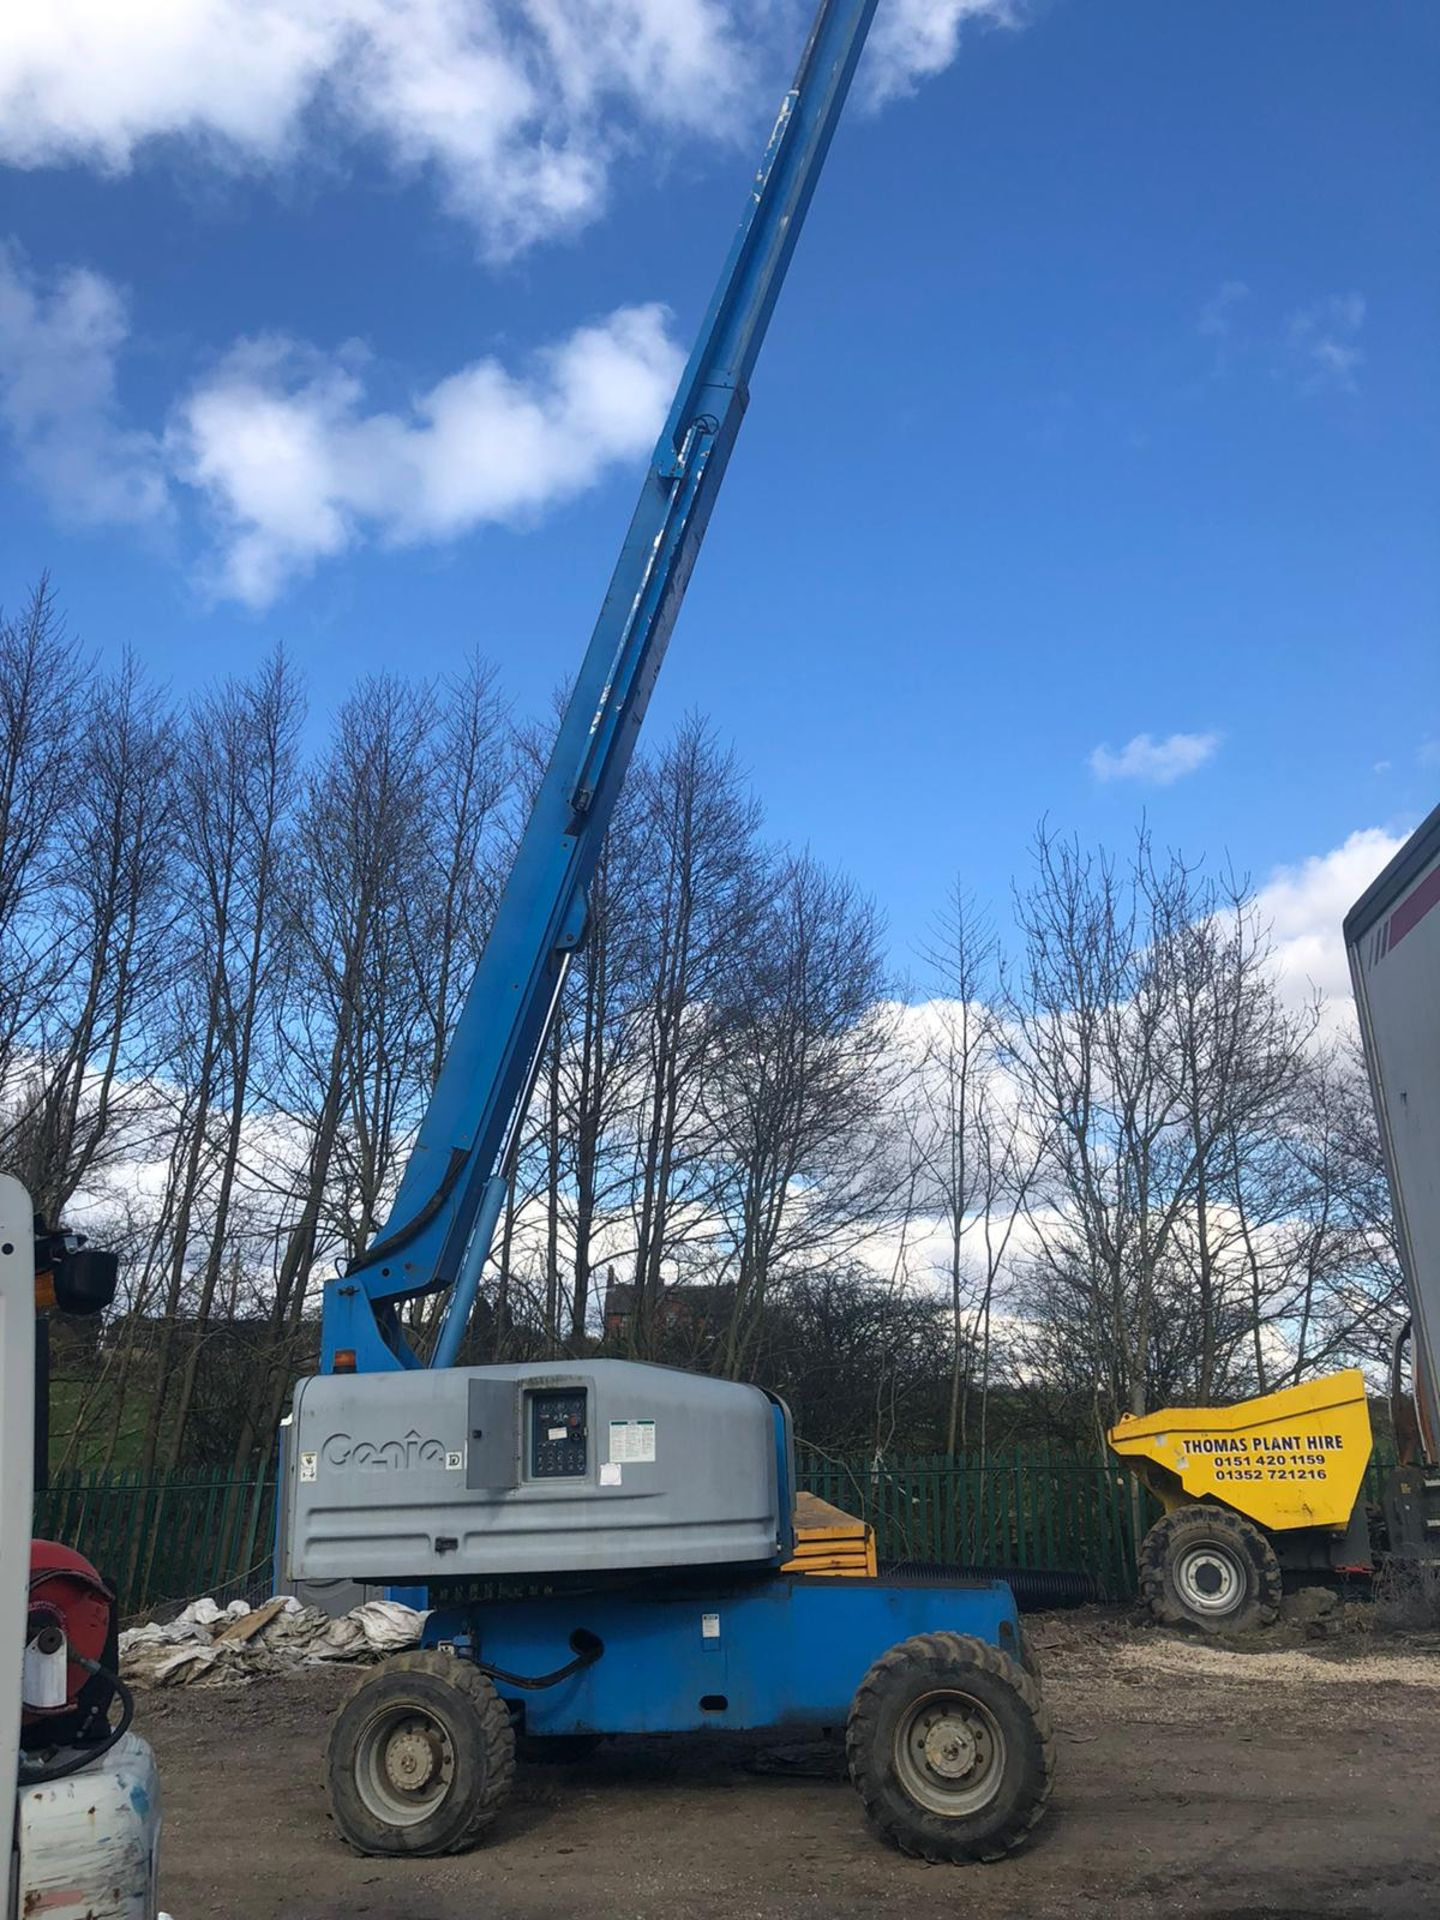 Lot 163 - GENIE S-45 BOOM LIFT, 4 WHEEL DRIVE, RUNS, WORKS AND LIFTS *PLUS VAT*